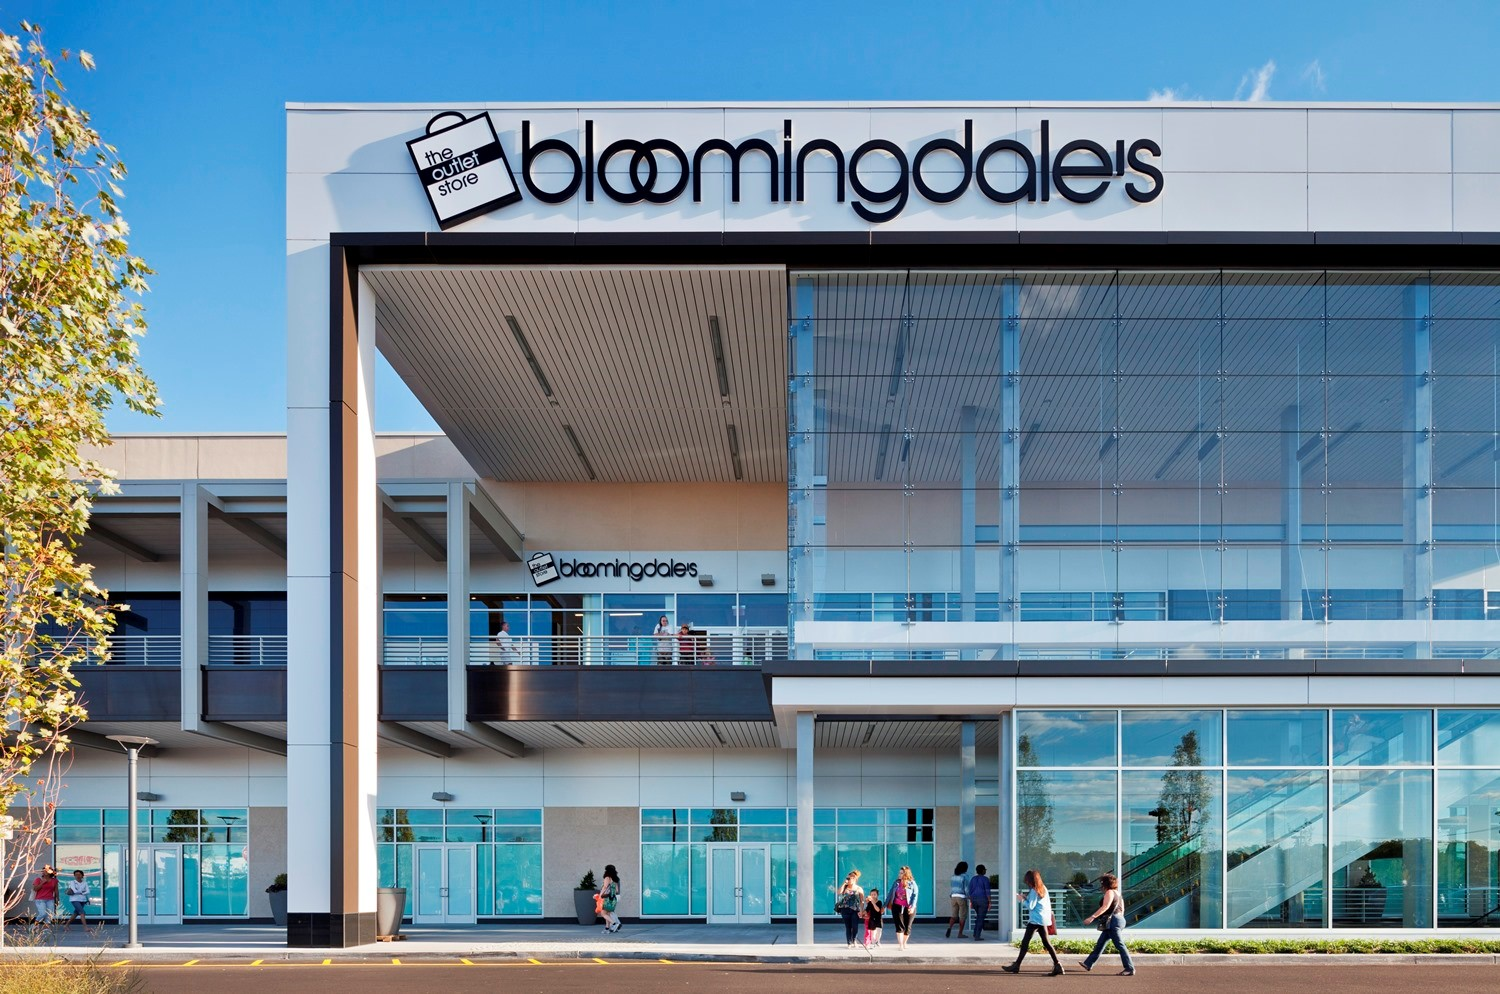 Gallery at Westbury Plaza bloomingdales.jpg